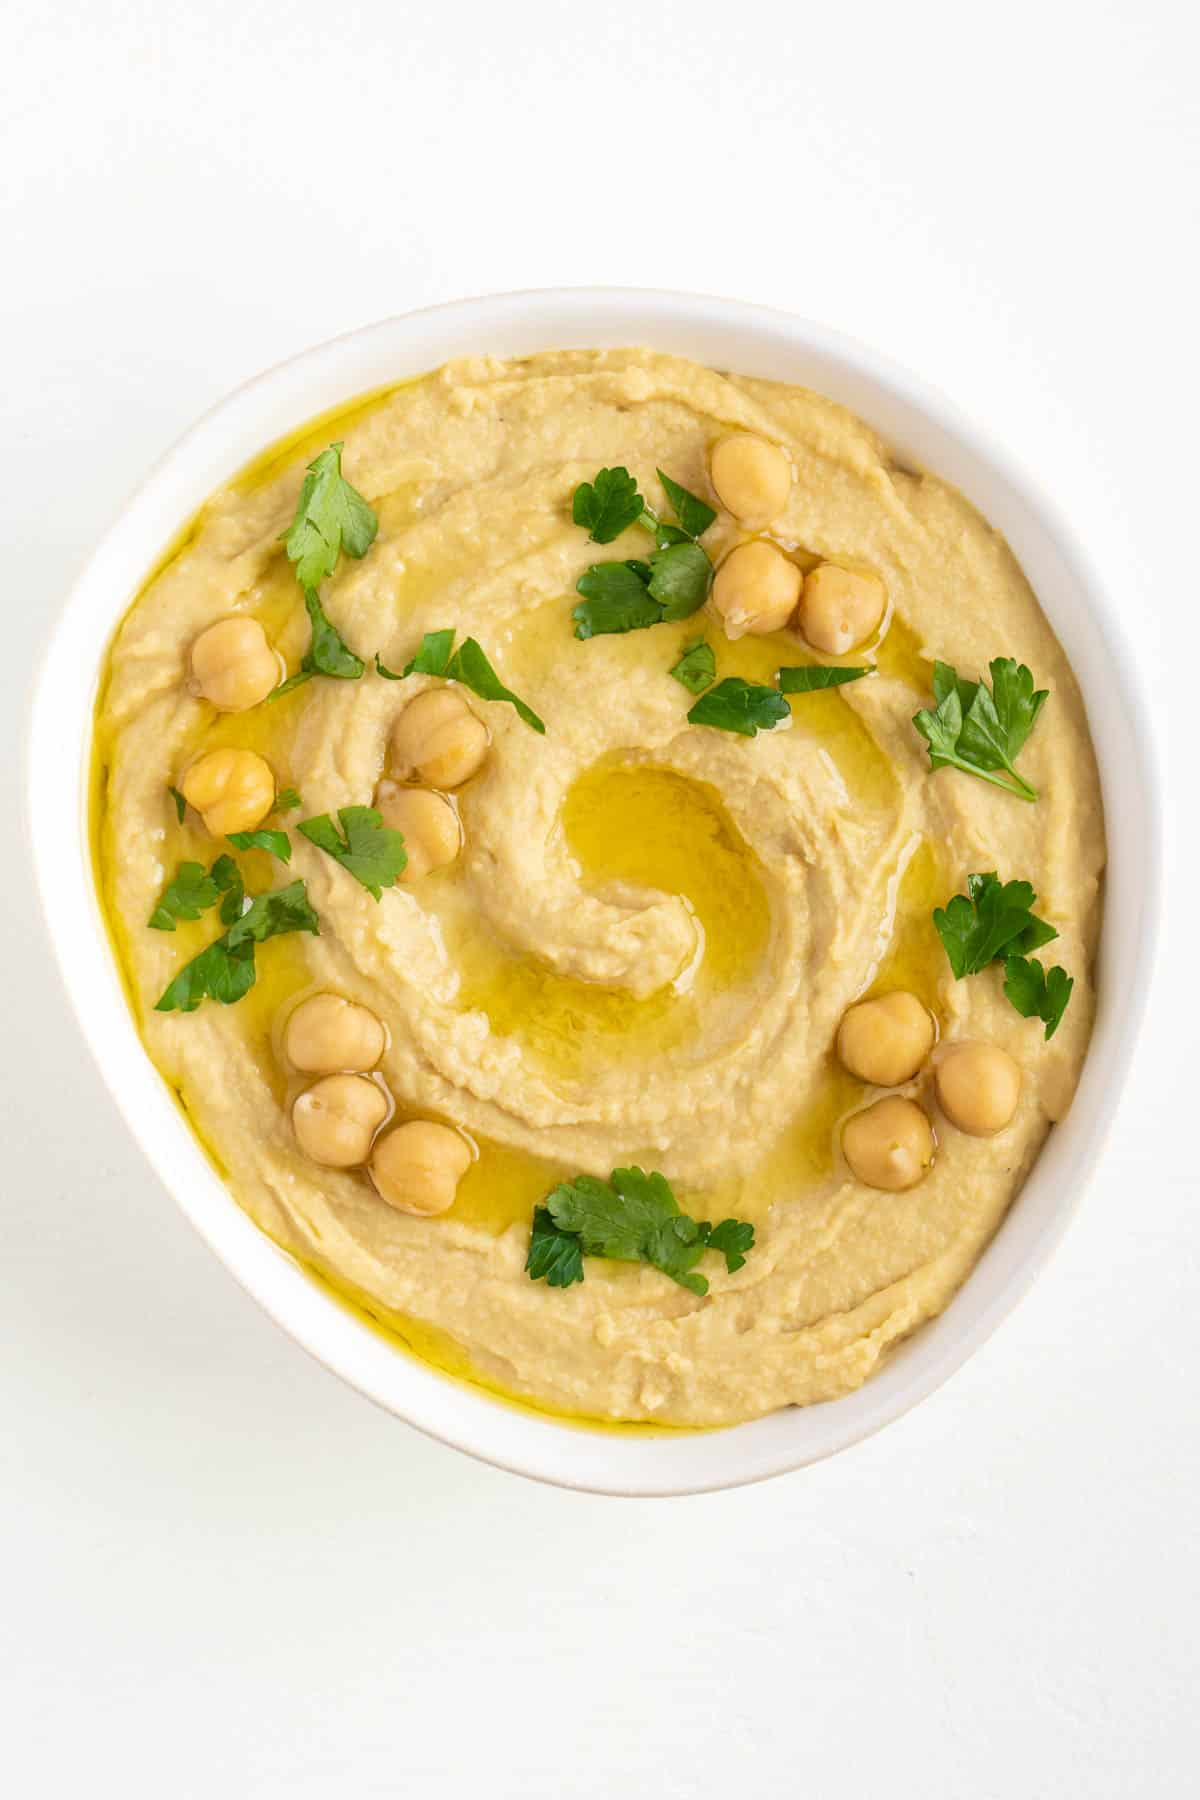 vegan hummus topped with parsley, garbanzo beans, and olive oil